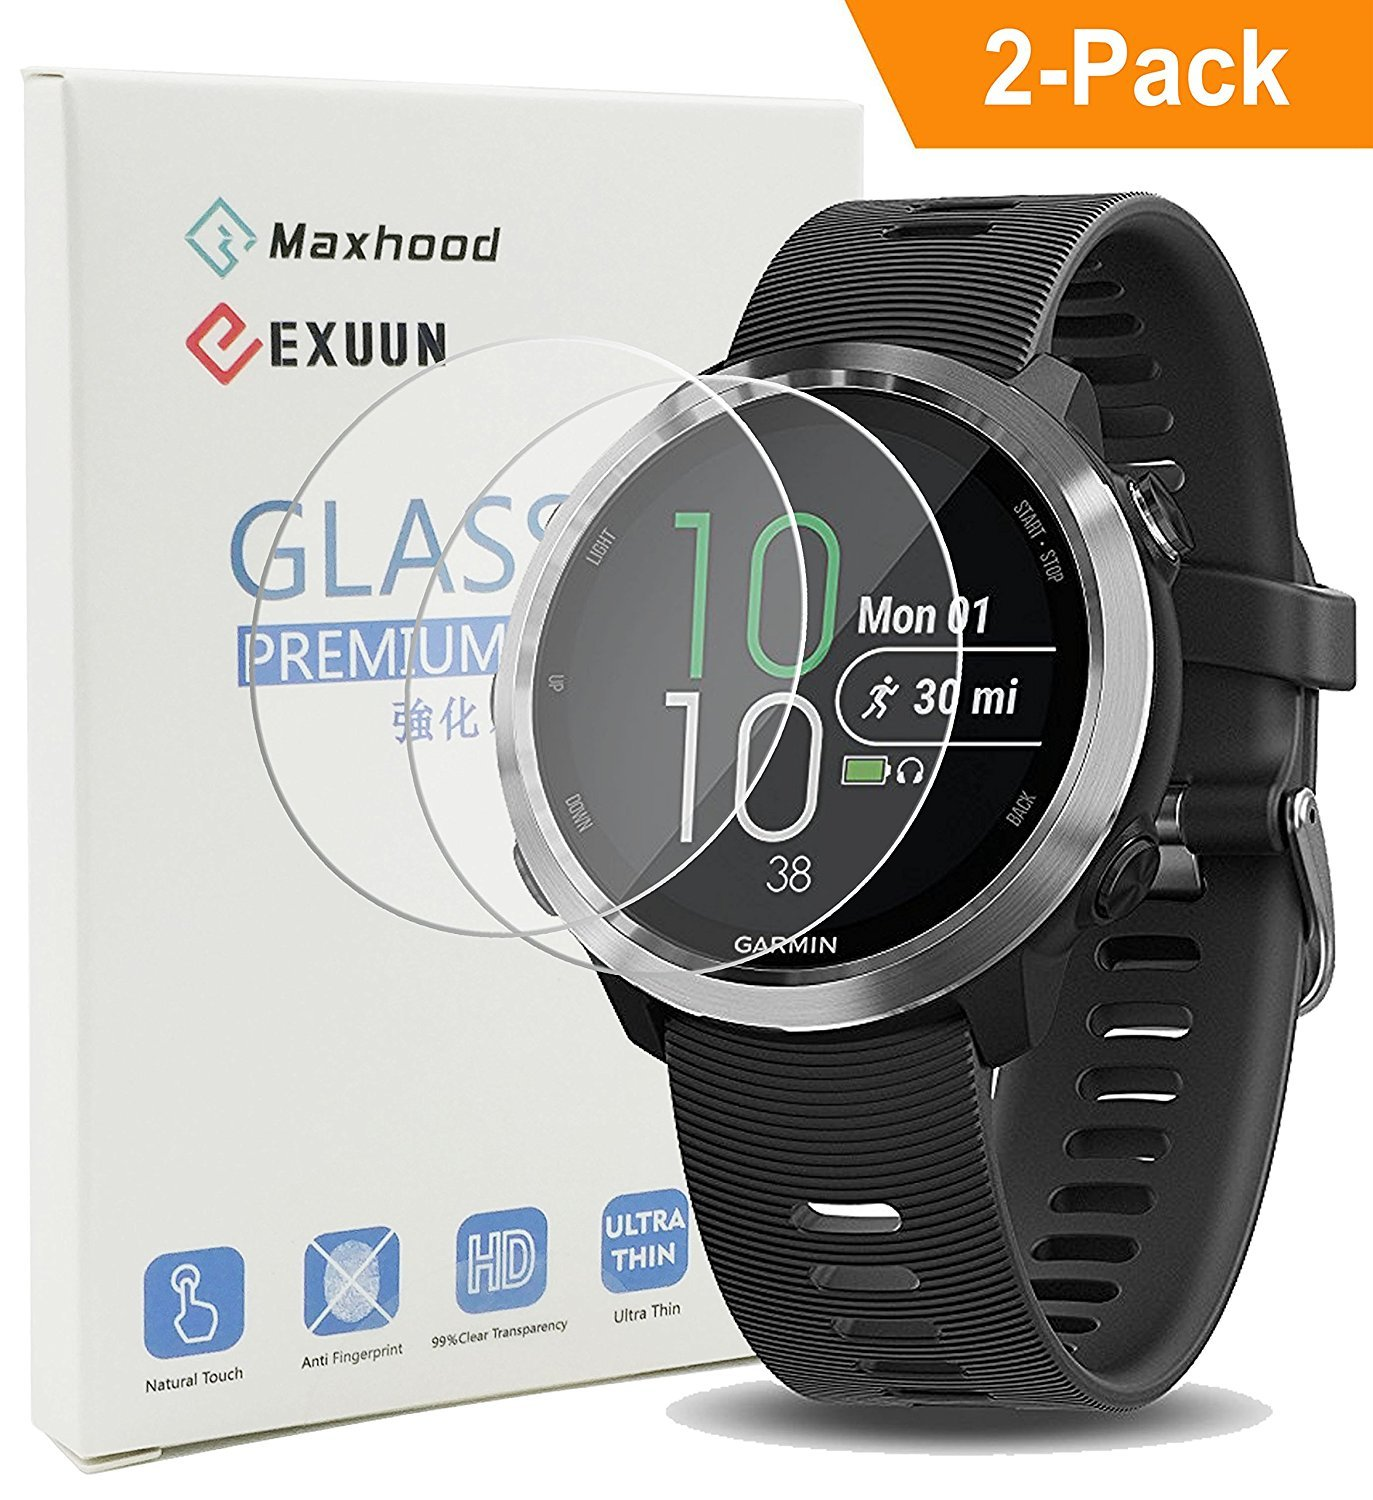 Exuun (2-Pack) Garmin Forerunner 645/645 Music Tempered Glass Screen Protector, 9H Premium Real Tempered Glass Screen Protector 2.5 D Round Edge Anti Scratch Screen Protector for Garmin 645